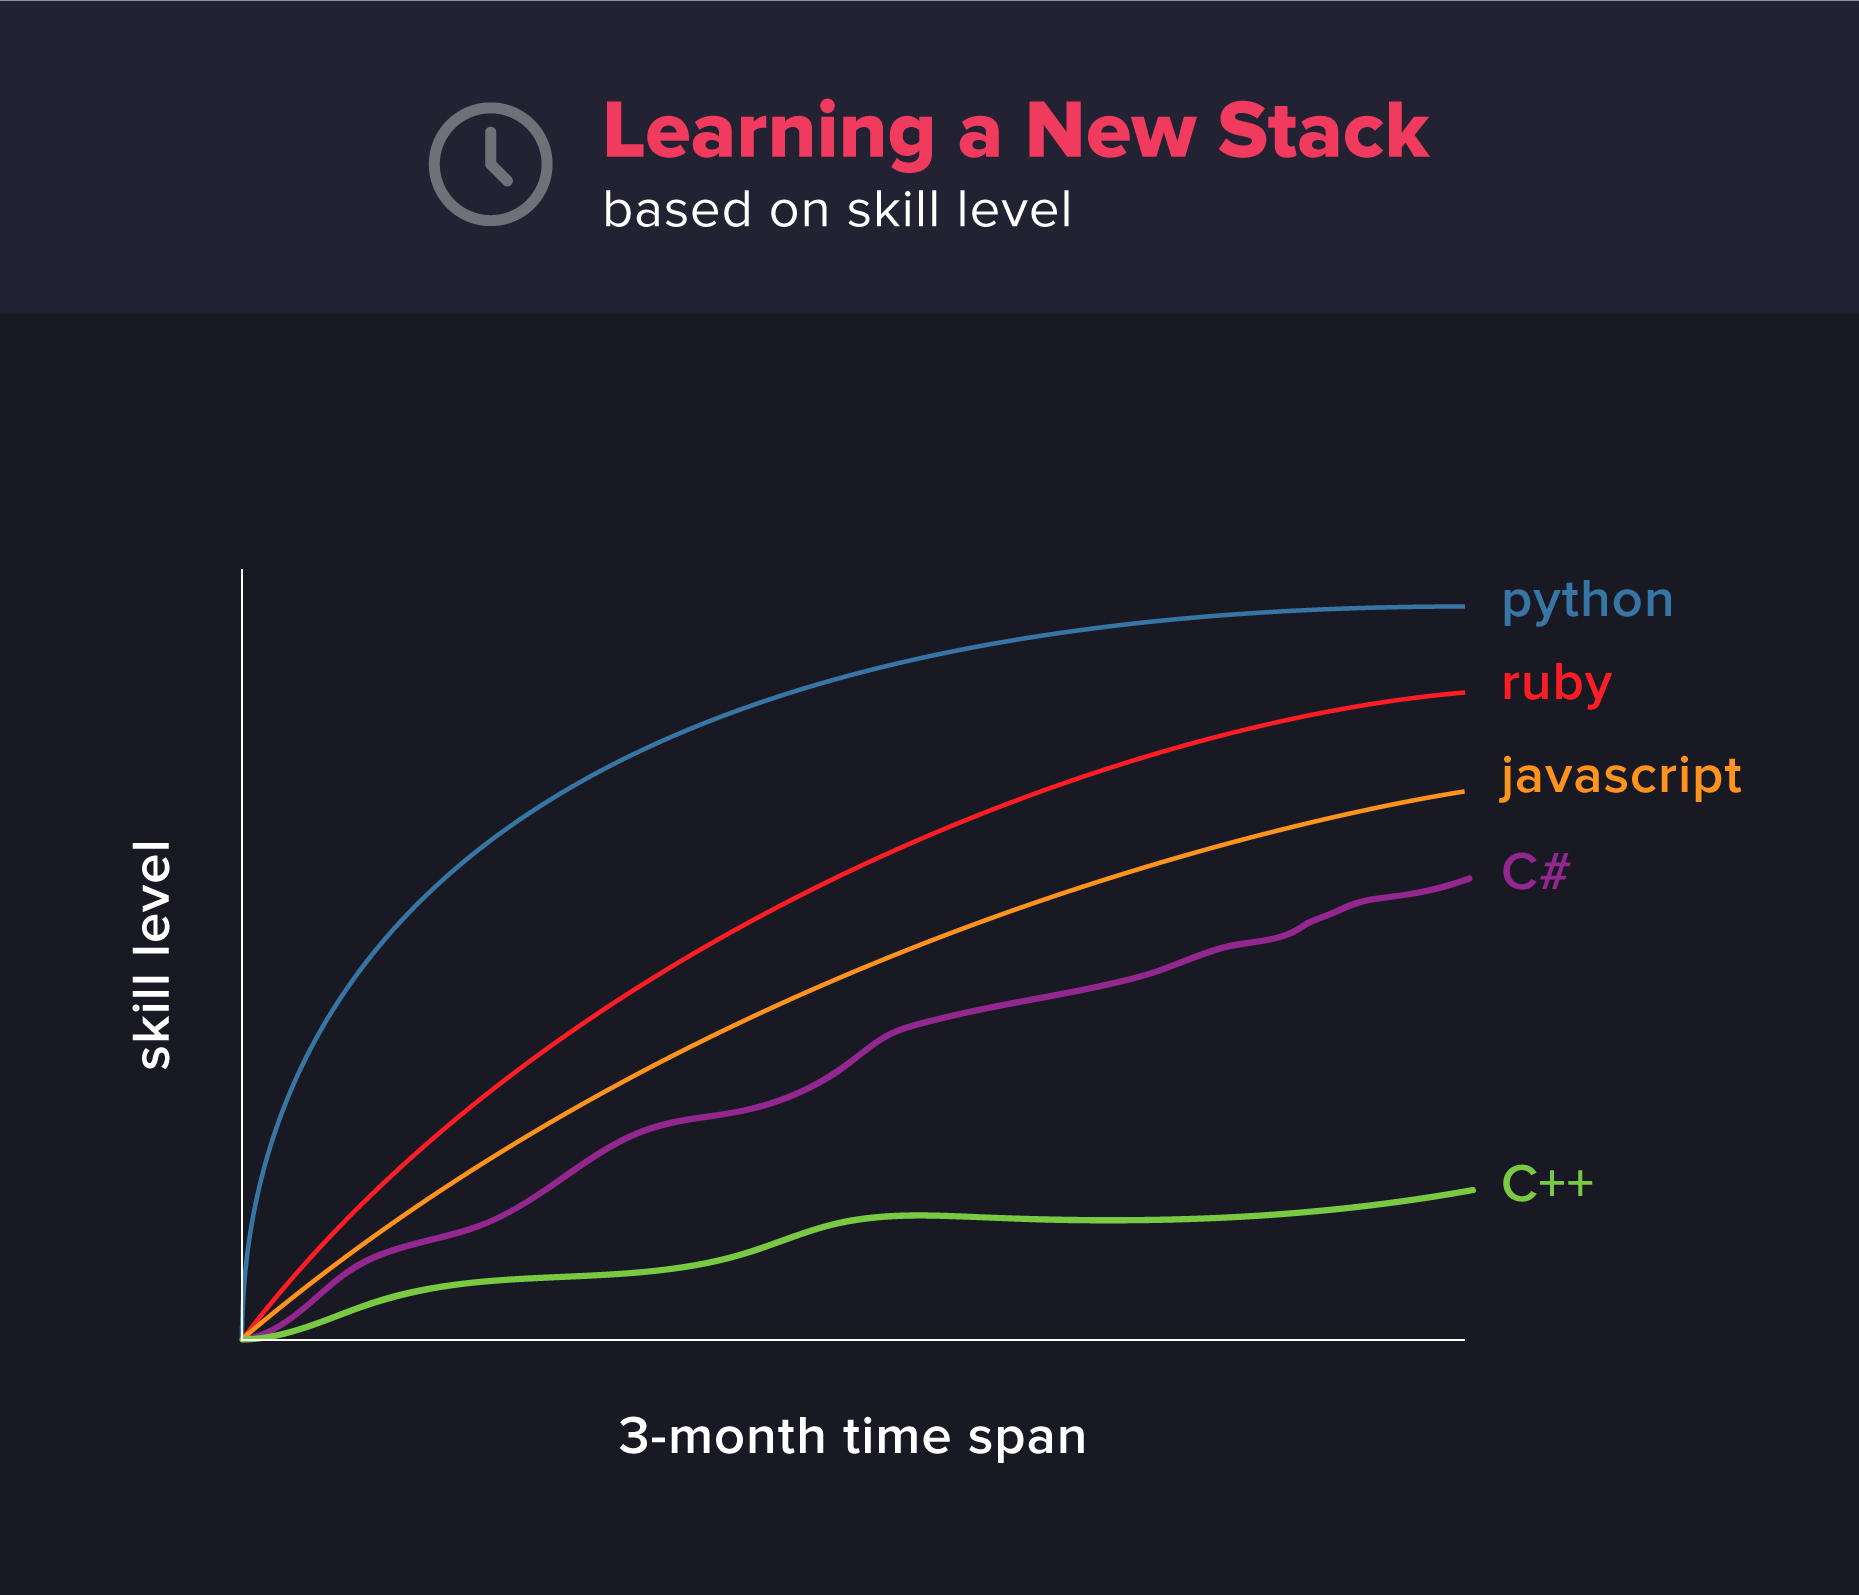 learning-a-new-stack